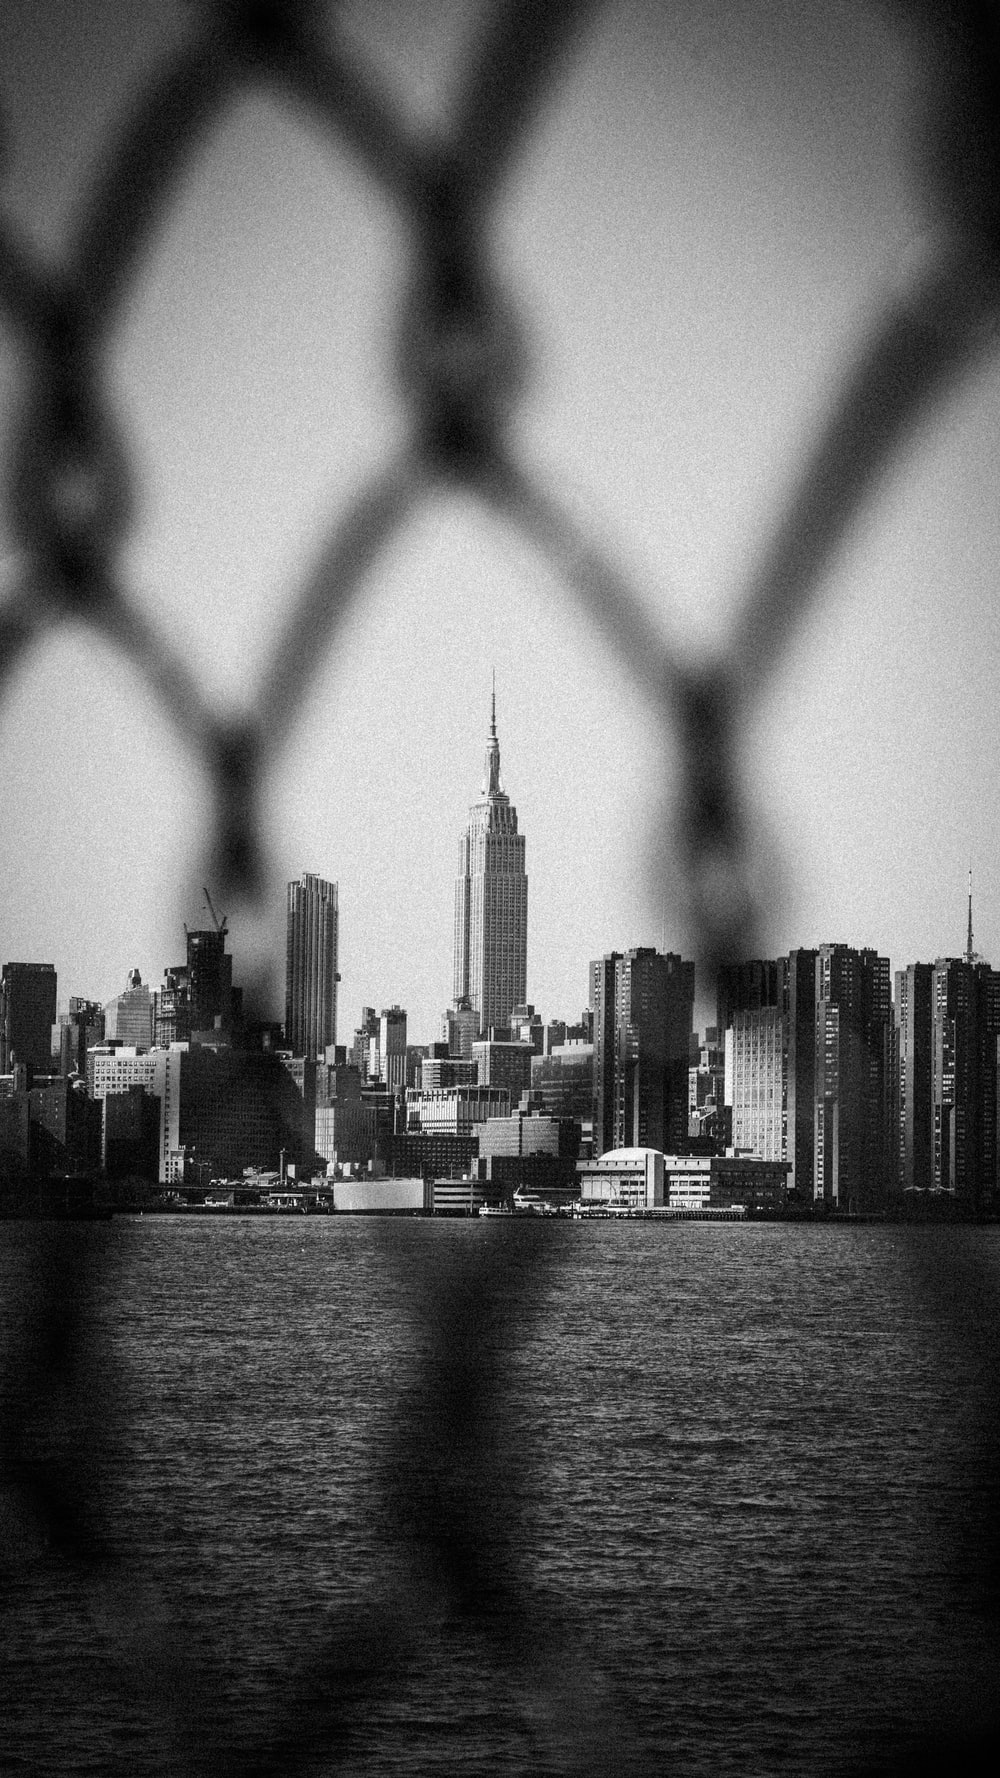 grayscale photo of city skyline during daytime